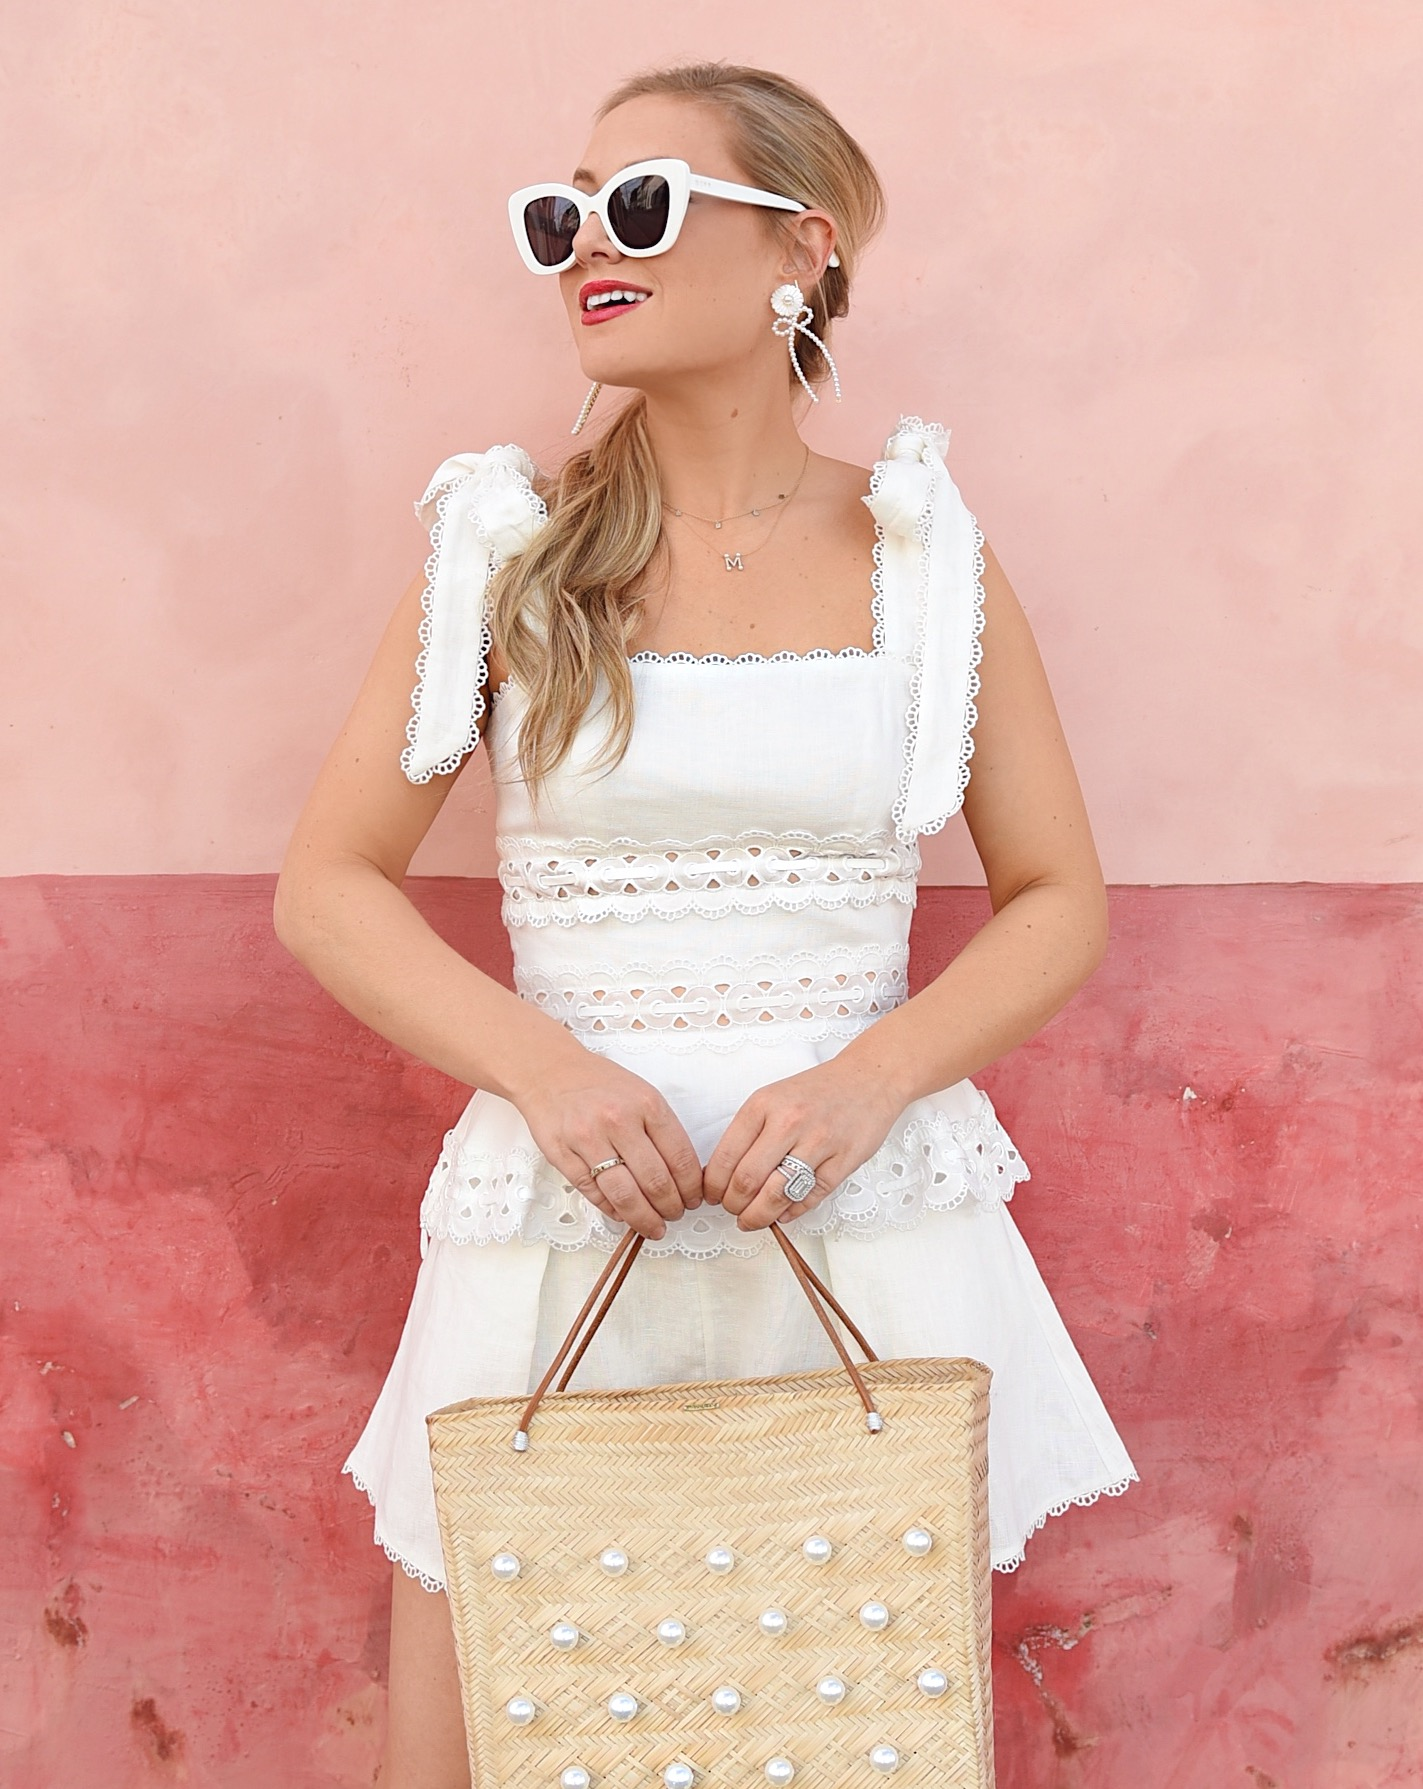 Lo-Murphy-Zimmermann-Kirra-Tie-Shoulder-Cropped-Top-Lace-Trim-Short-White-Matching-set-travel-style-dallas-blogger-mercedes-salazar